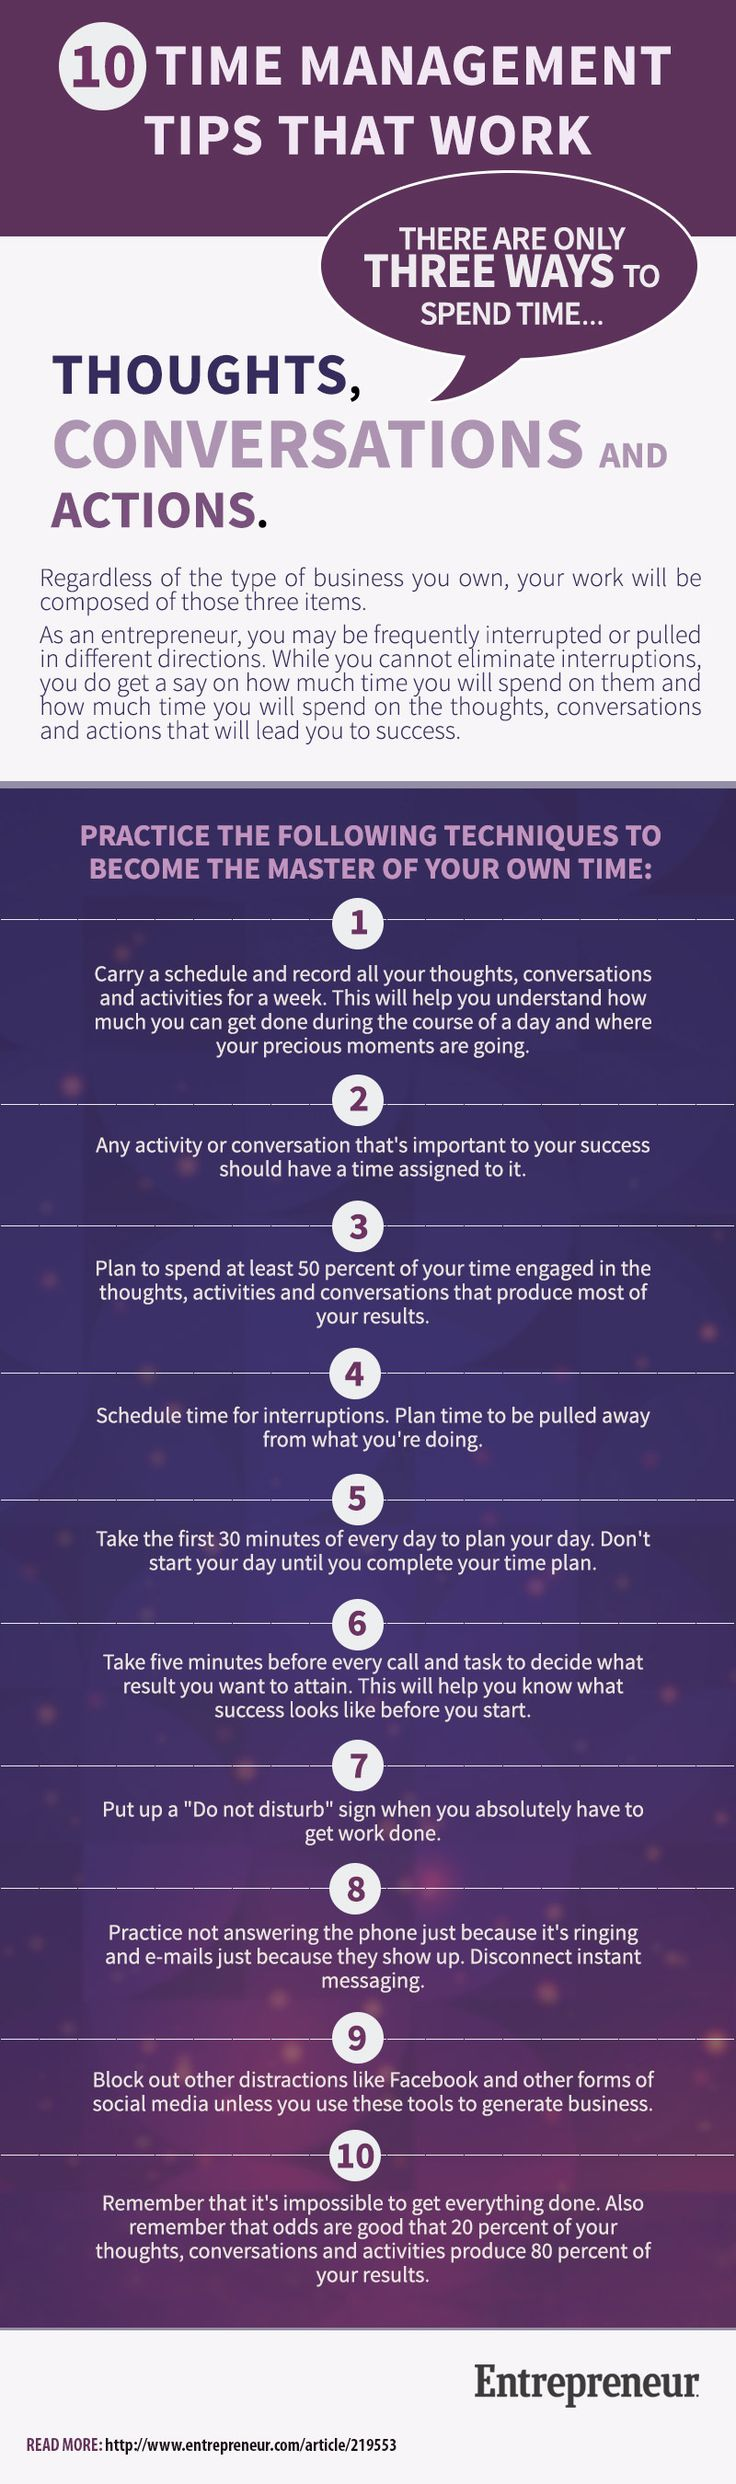 best time management tips ideas time management how to manage time 10 tips that work